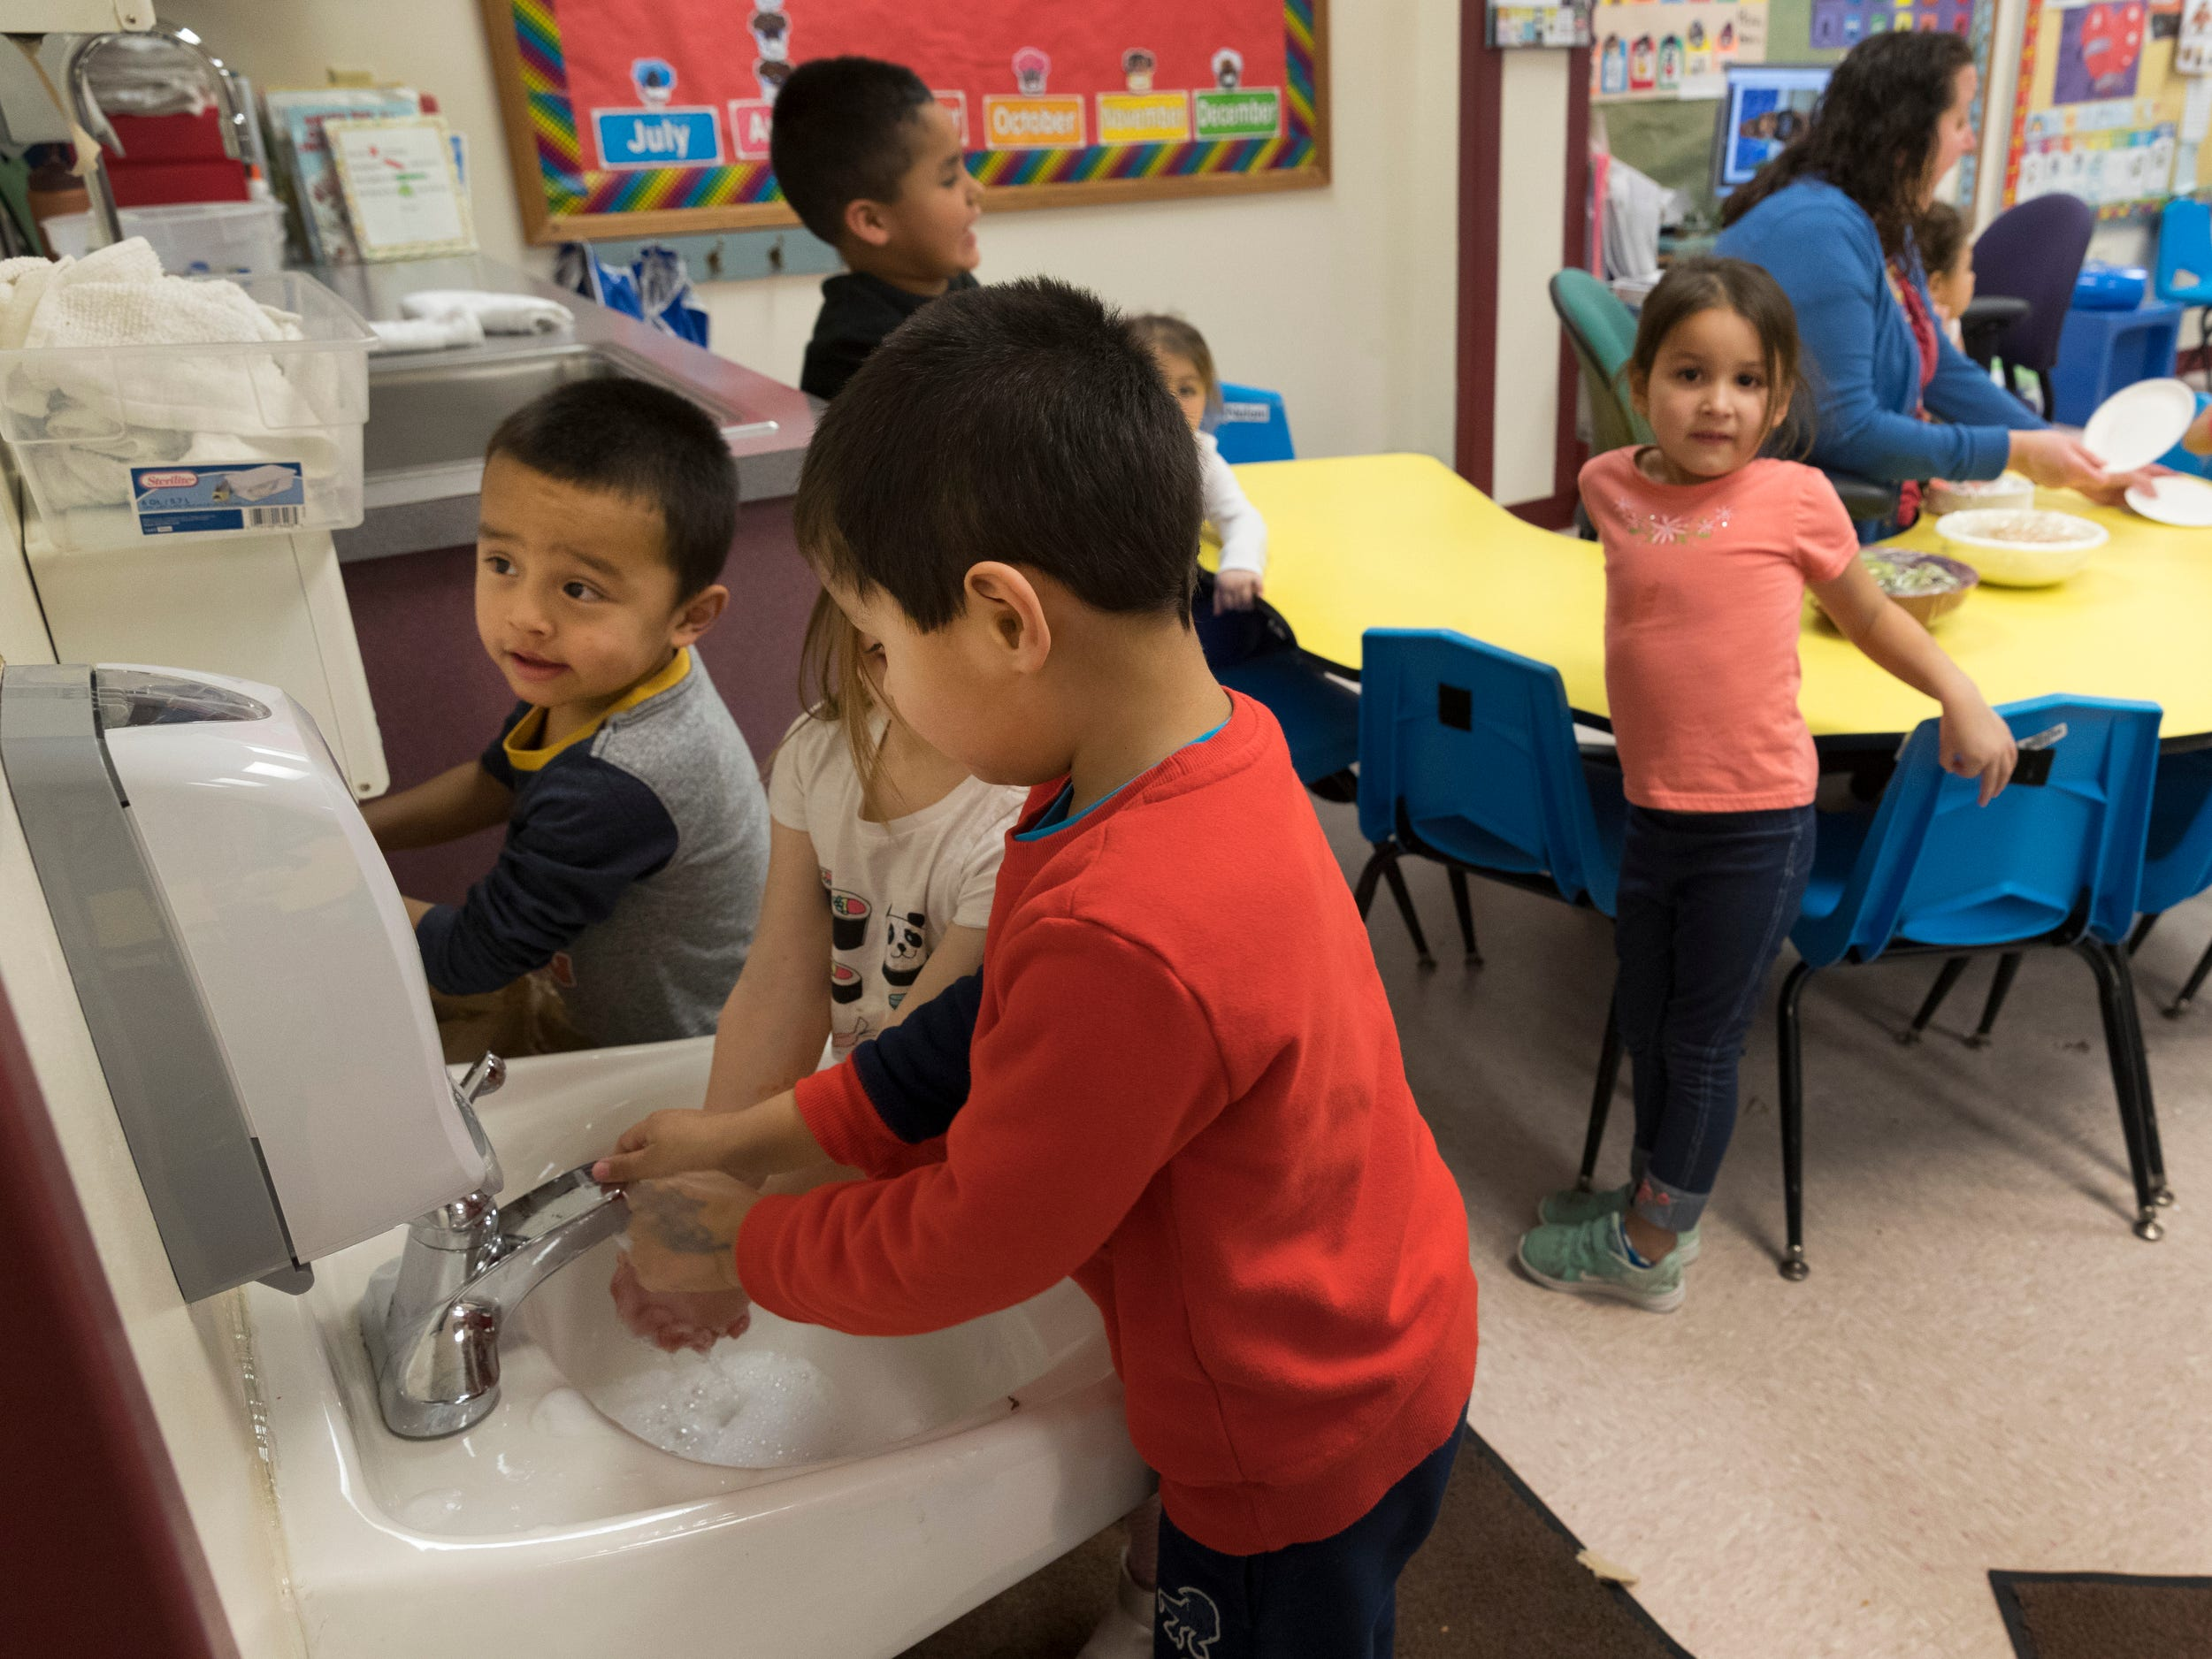 Students wash their hands while Head Start teacher Lisa Hyde serves snacks on the Oneida Indian Reservation in Oneida. The tribe is faring better with the shutdown of the federal government than other tribes because of planning done in the wake of the 2013 shutdown. Head Start is a federally funded program.